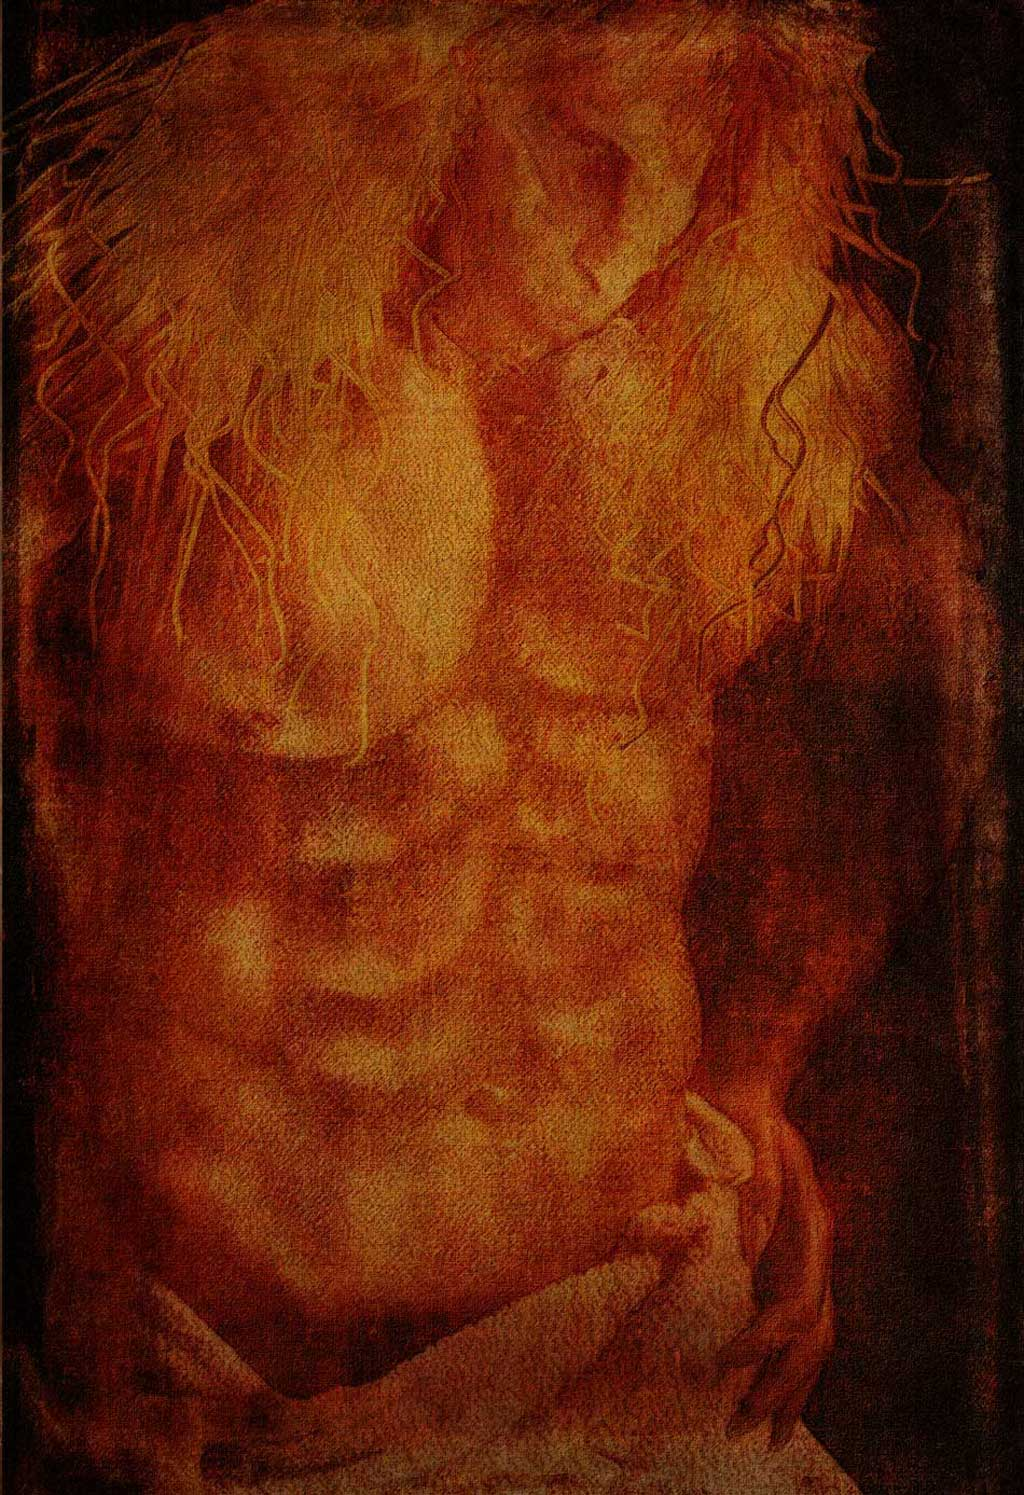 Vincent, shirtless, his hips draped in a towel after a bath